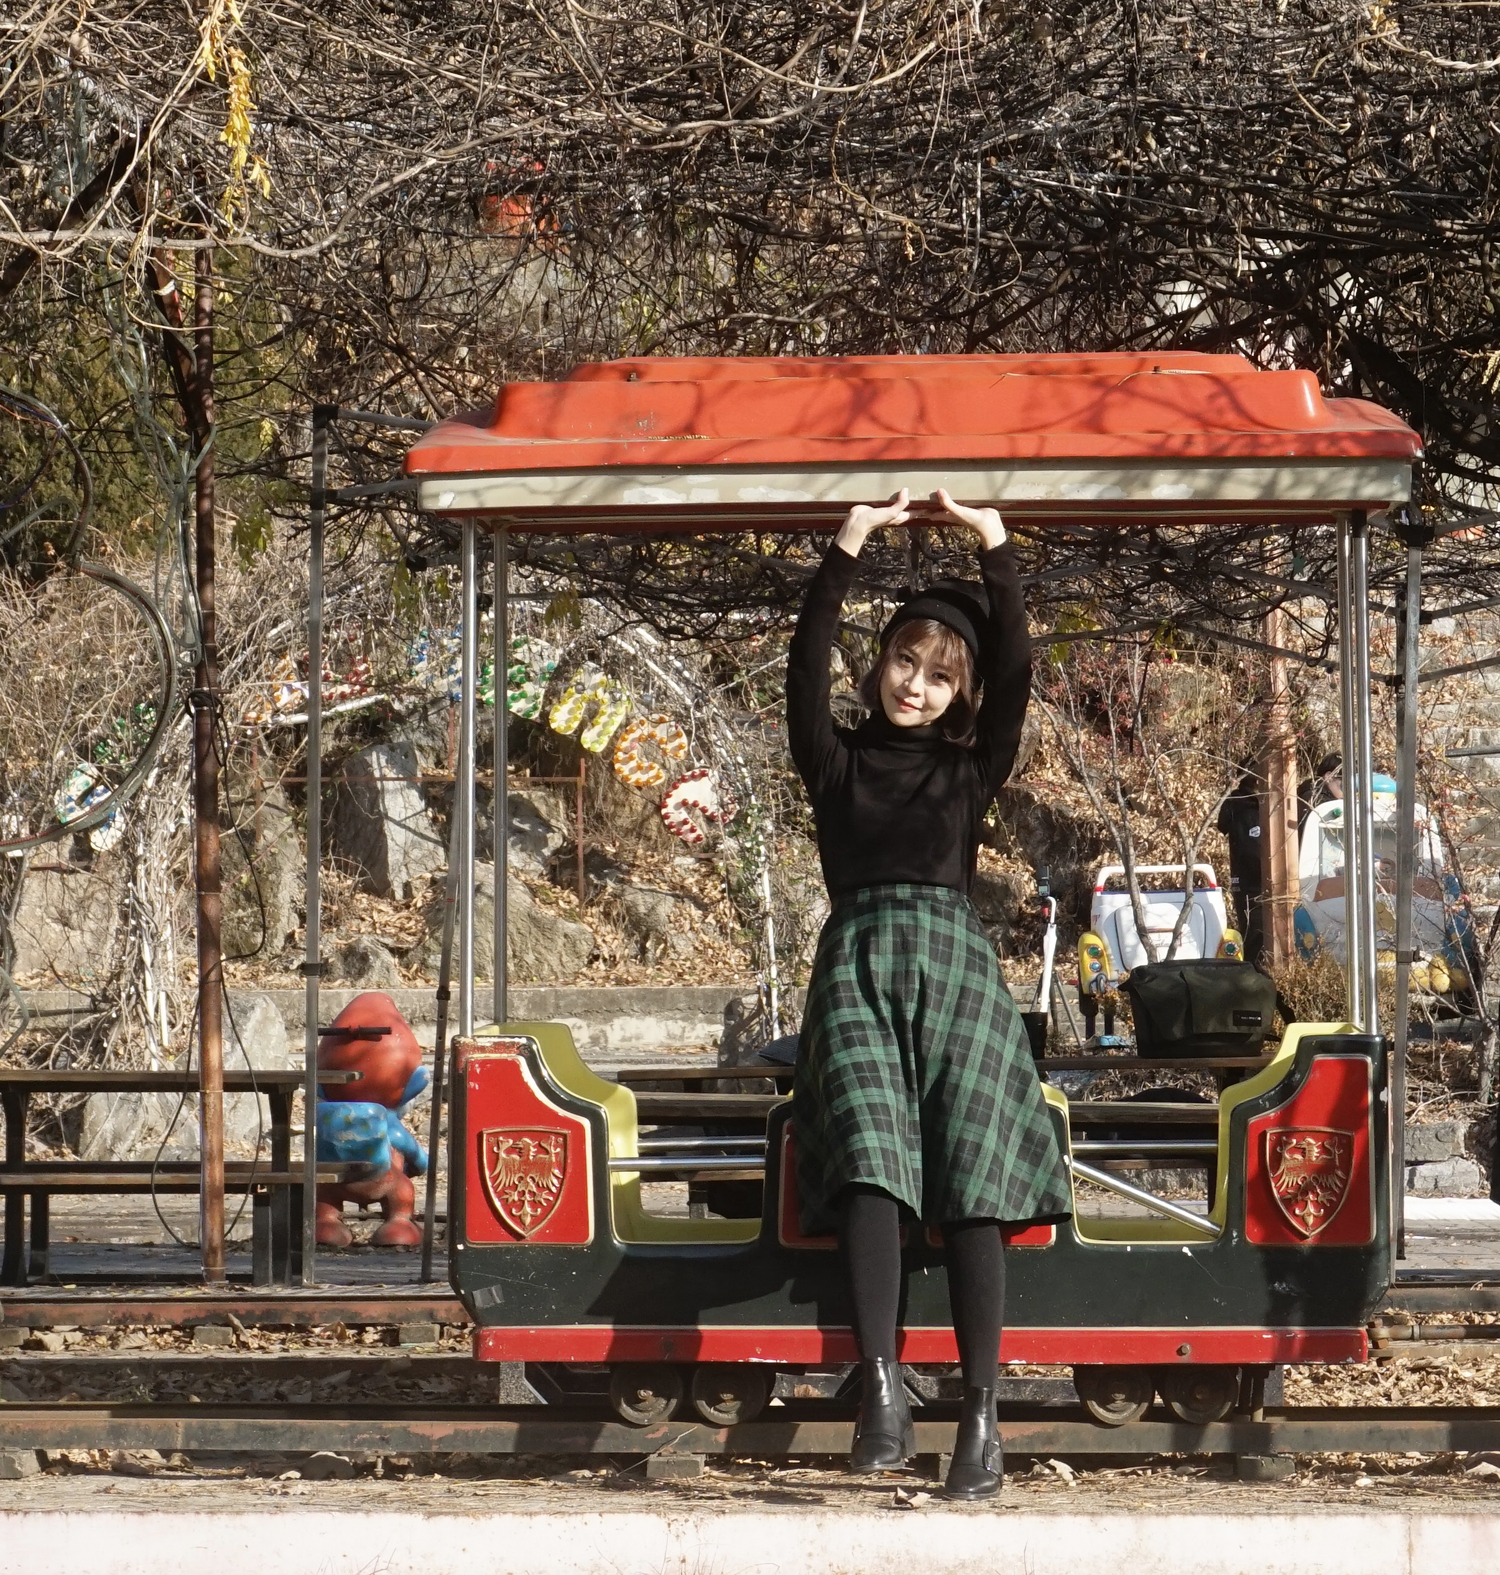 Yongma_Land_Abandoned_Amusement_Park_Seoul_Korea_Photoshoot_11